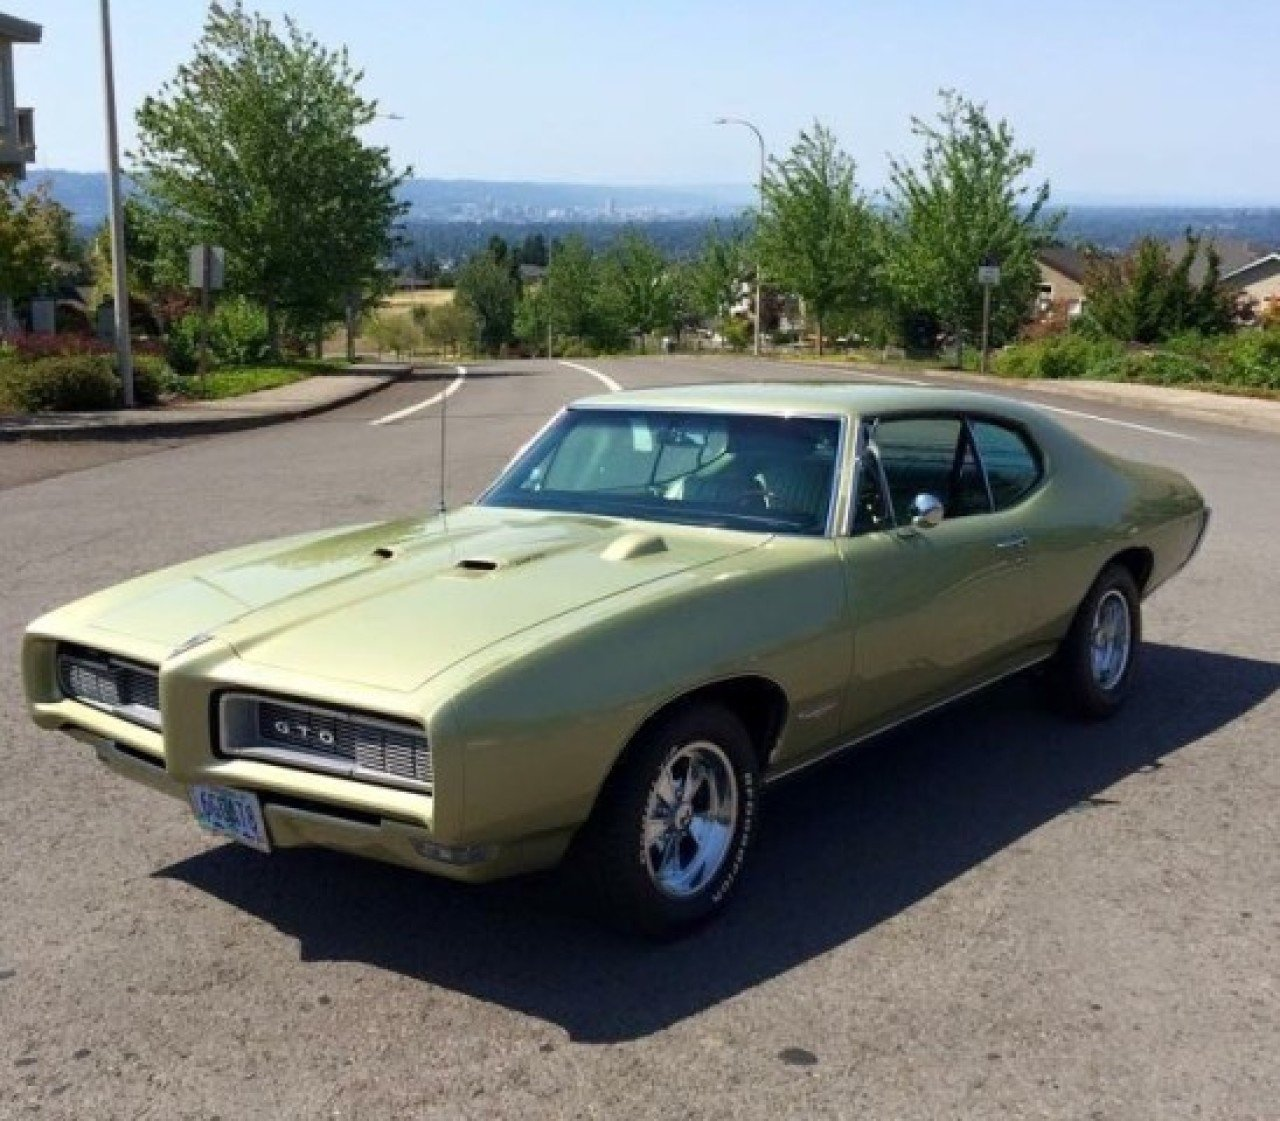 Autotrader Muscle Cars For Sale >> 1968 Pontiac GTO for sale near Damascus, Oregon 97089 - Classics on Autotrader